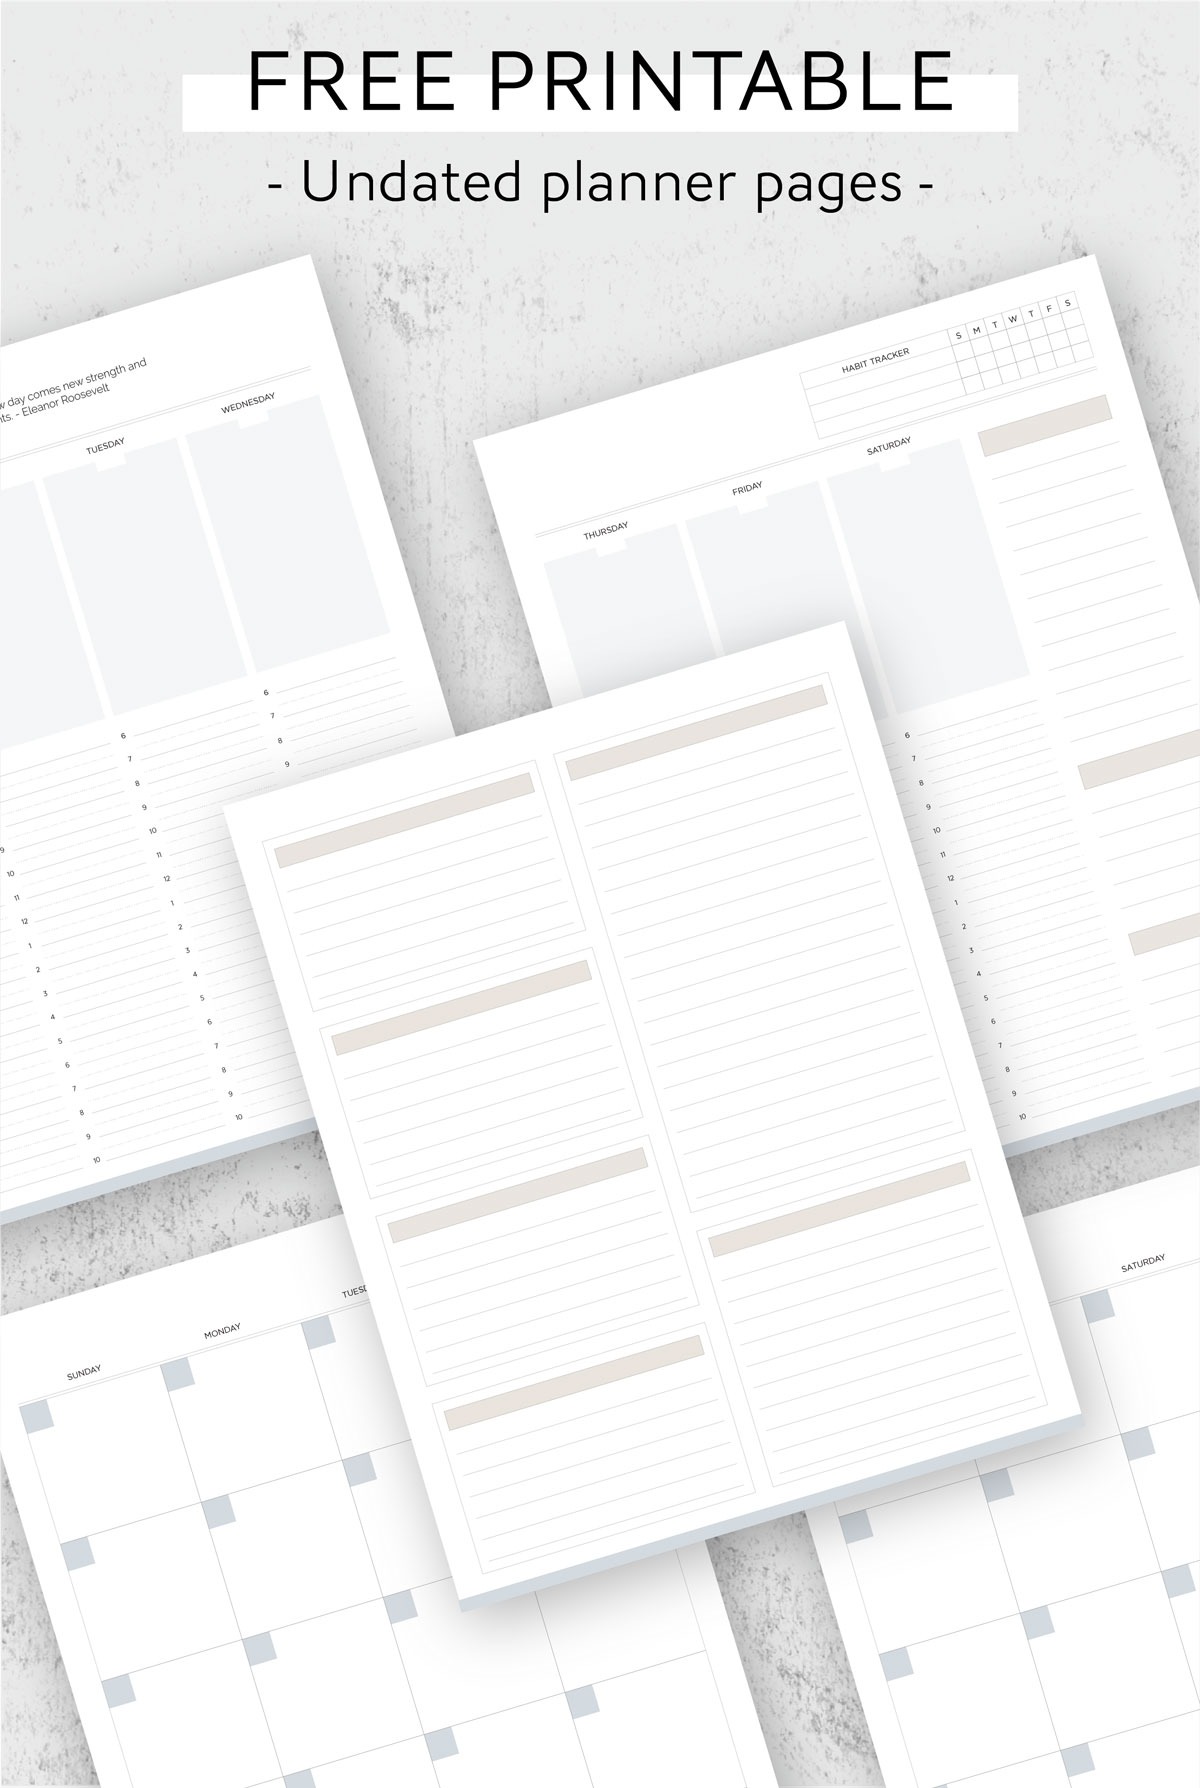 free printable day planner pages.